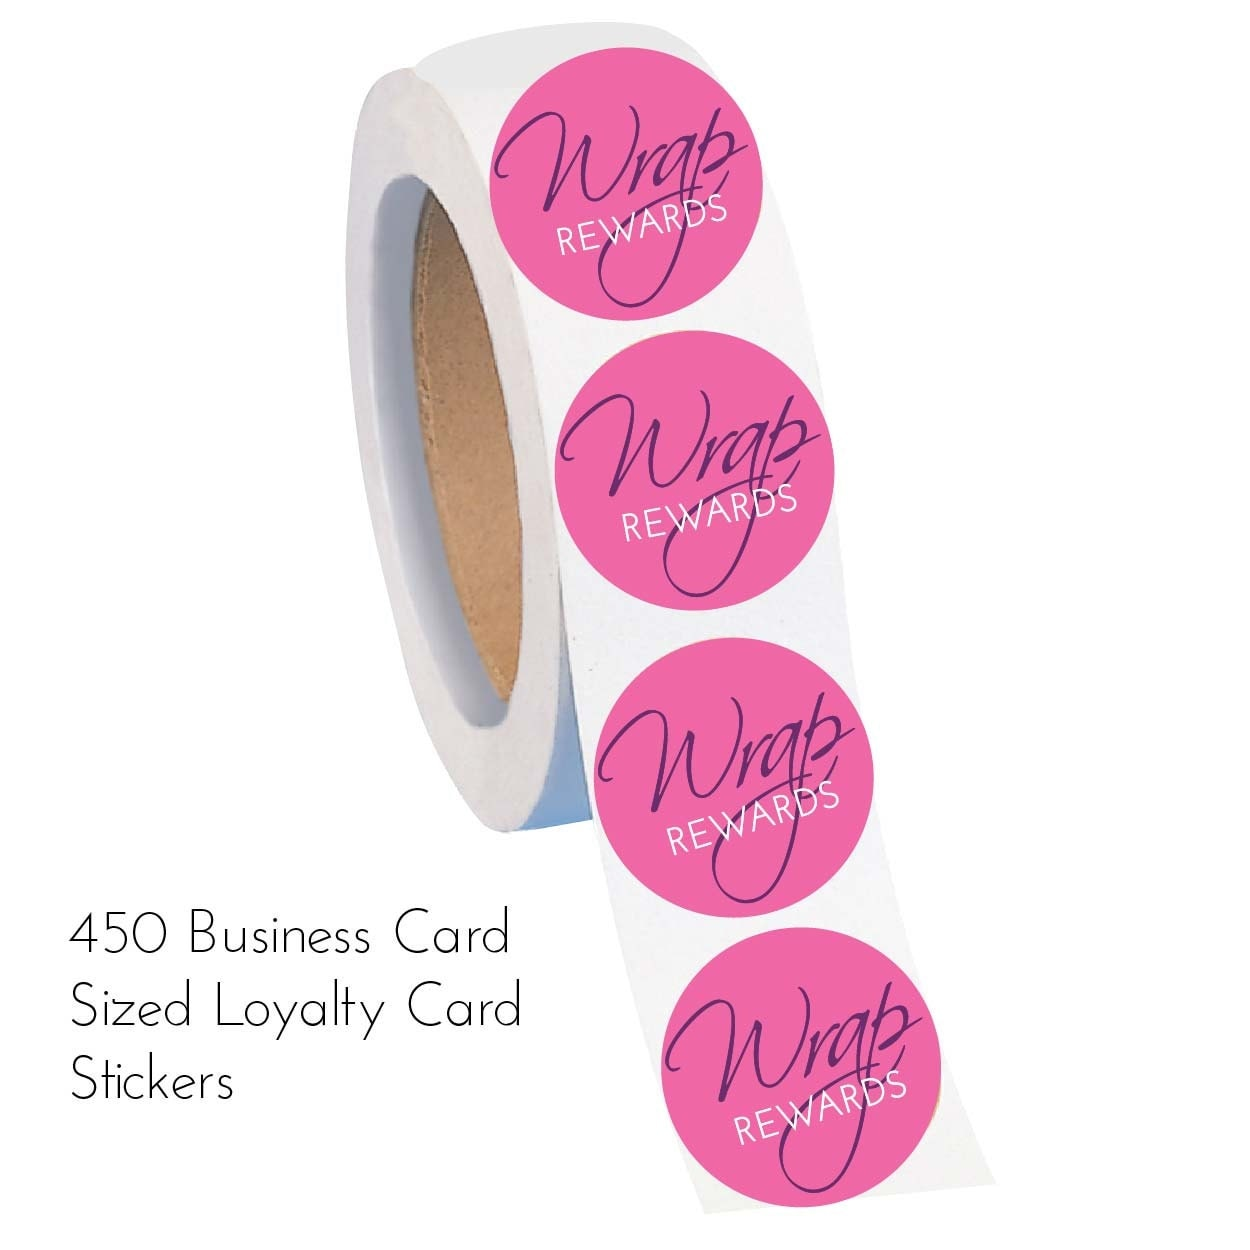 450 business card sized jammin39 wrap reward stickers for Business cards stickers